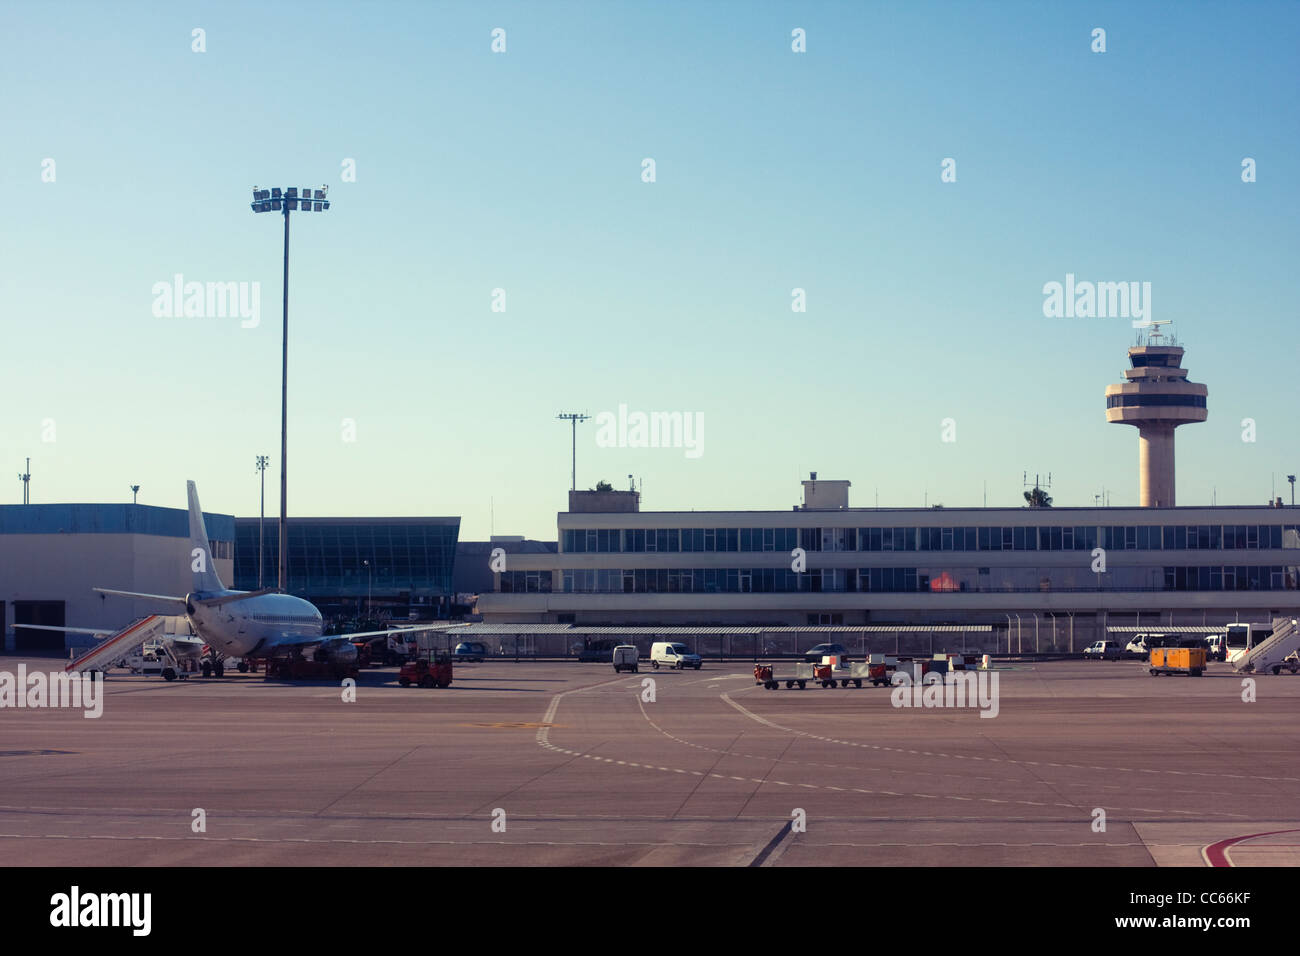 Airplane at an airport - Stock Image